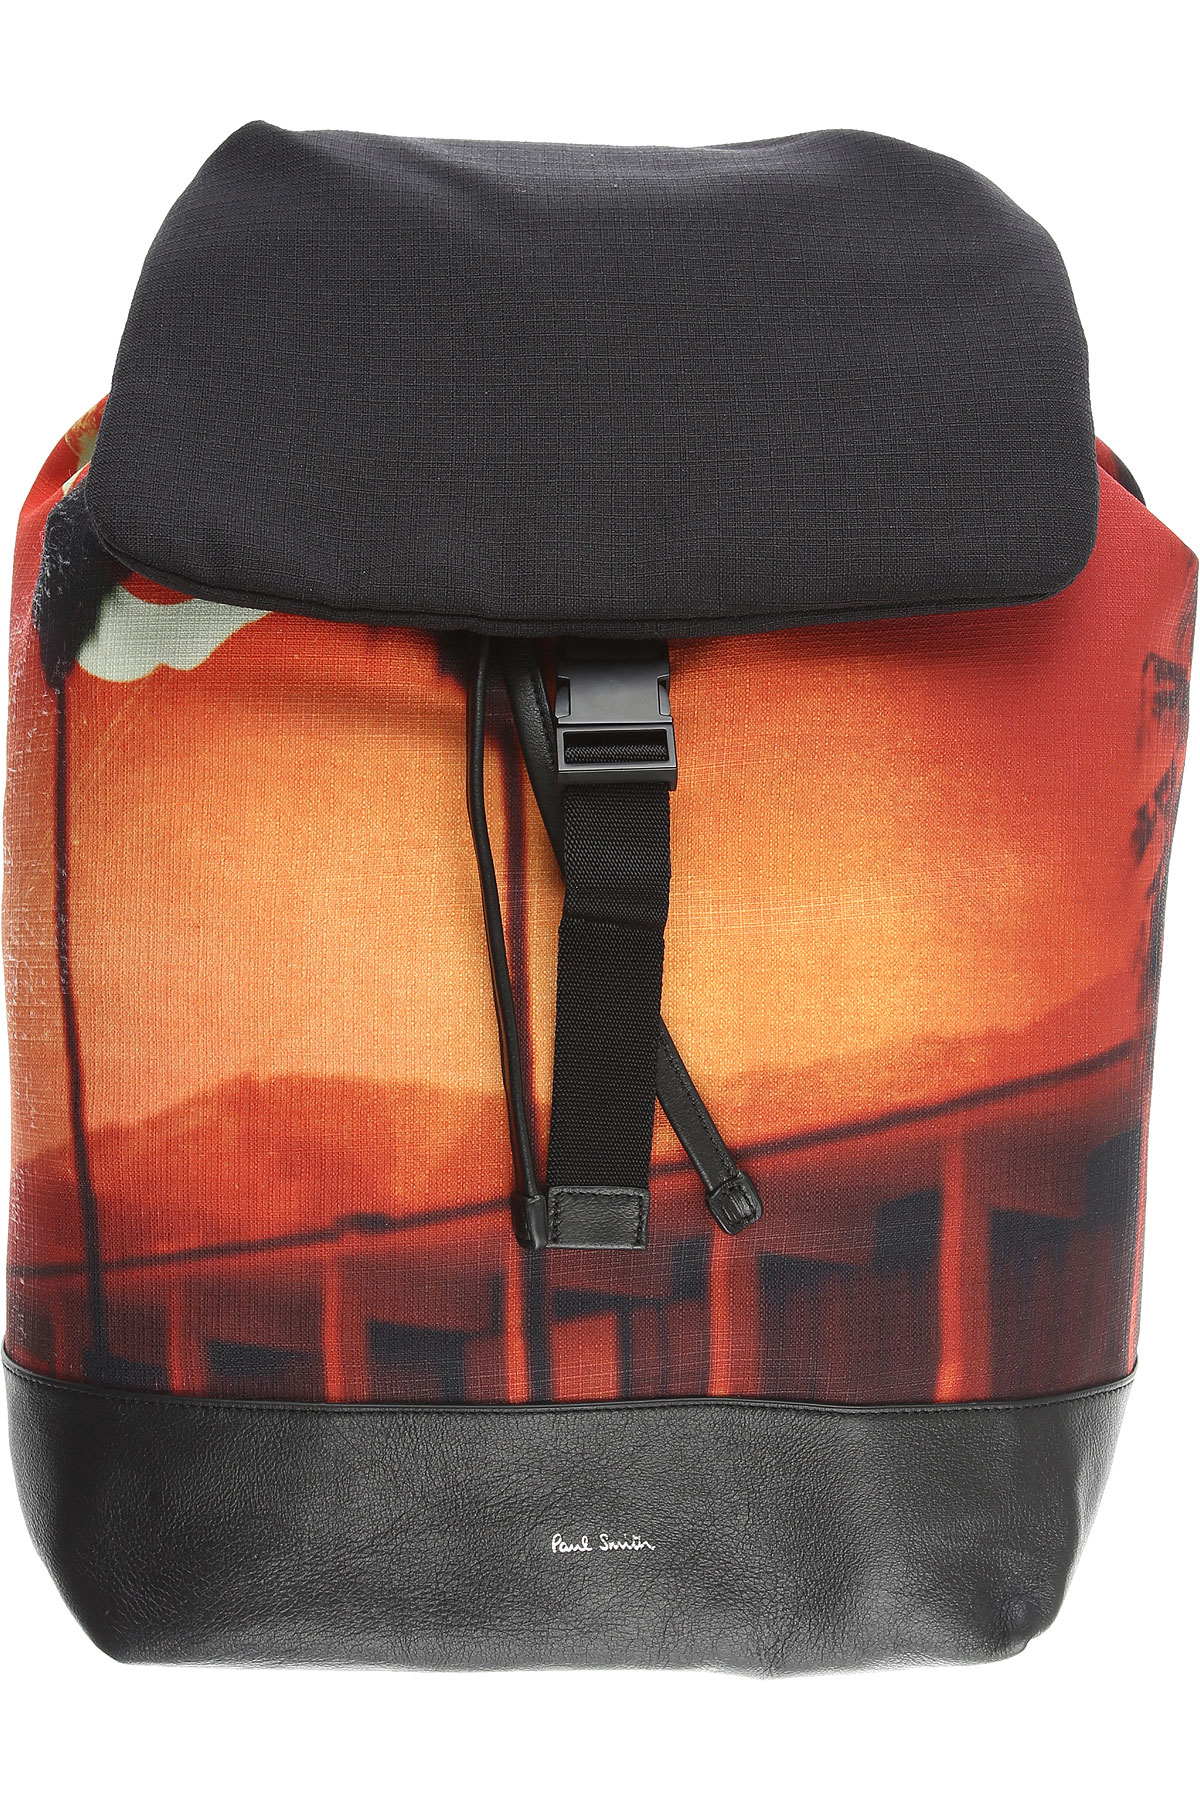 Paul Smith Backpack for Men On Sale, Black, Cotton, 2019